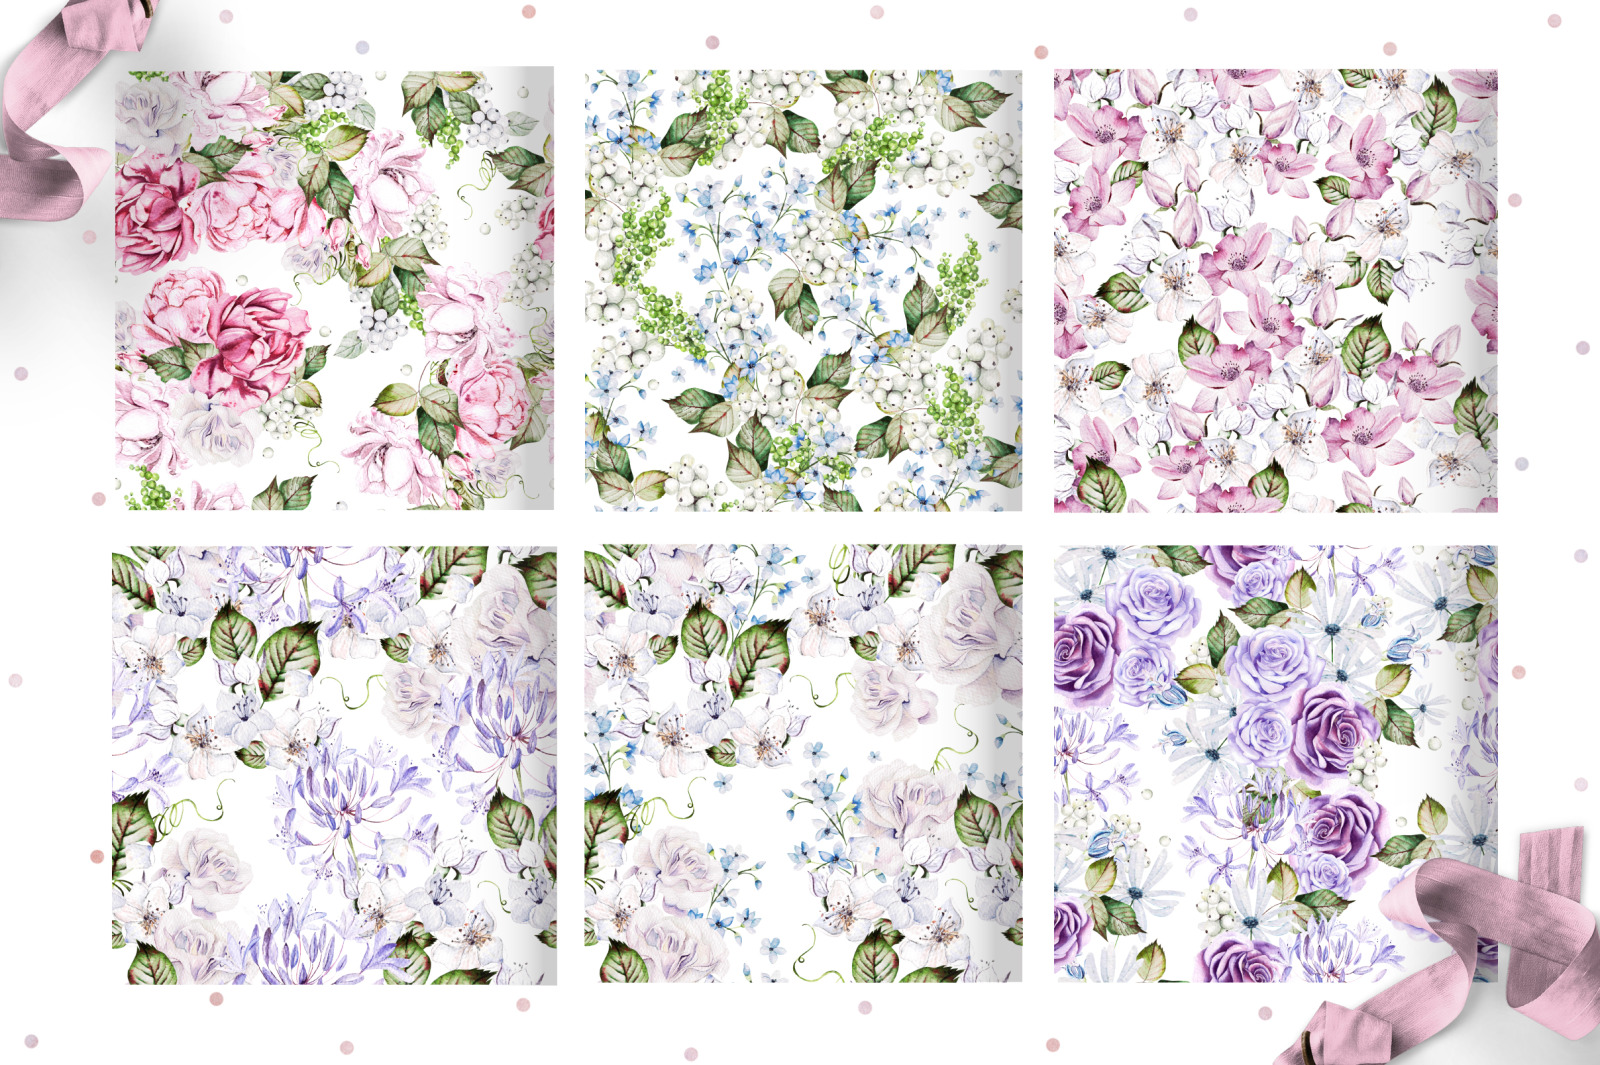 10 Watercolor Wedding Patterns